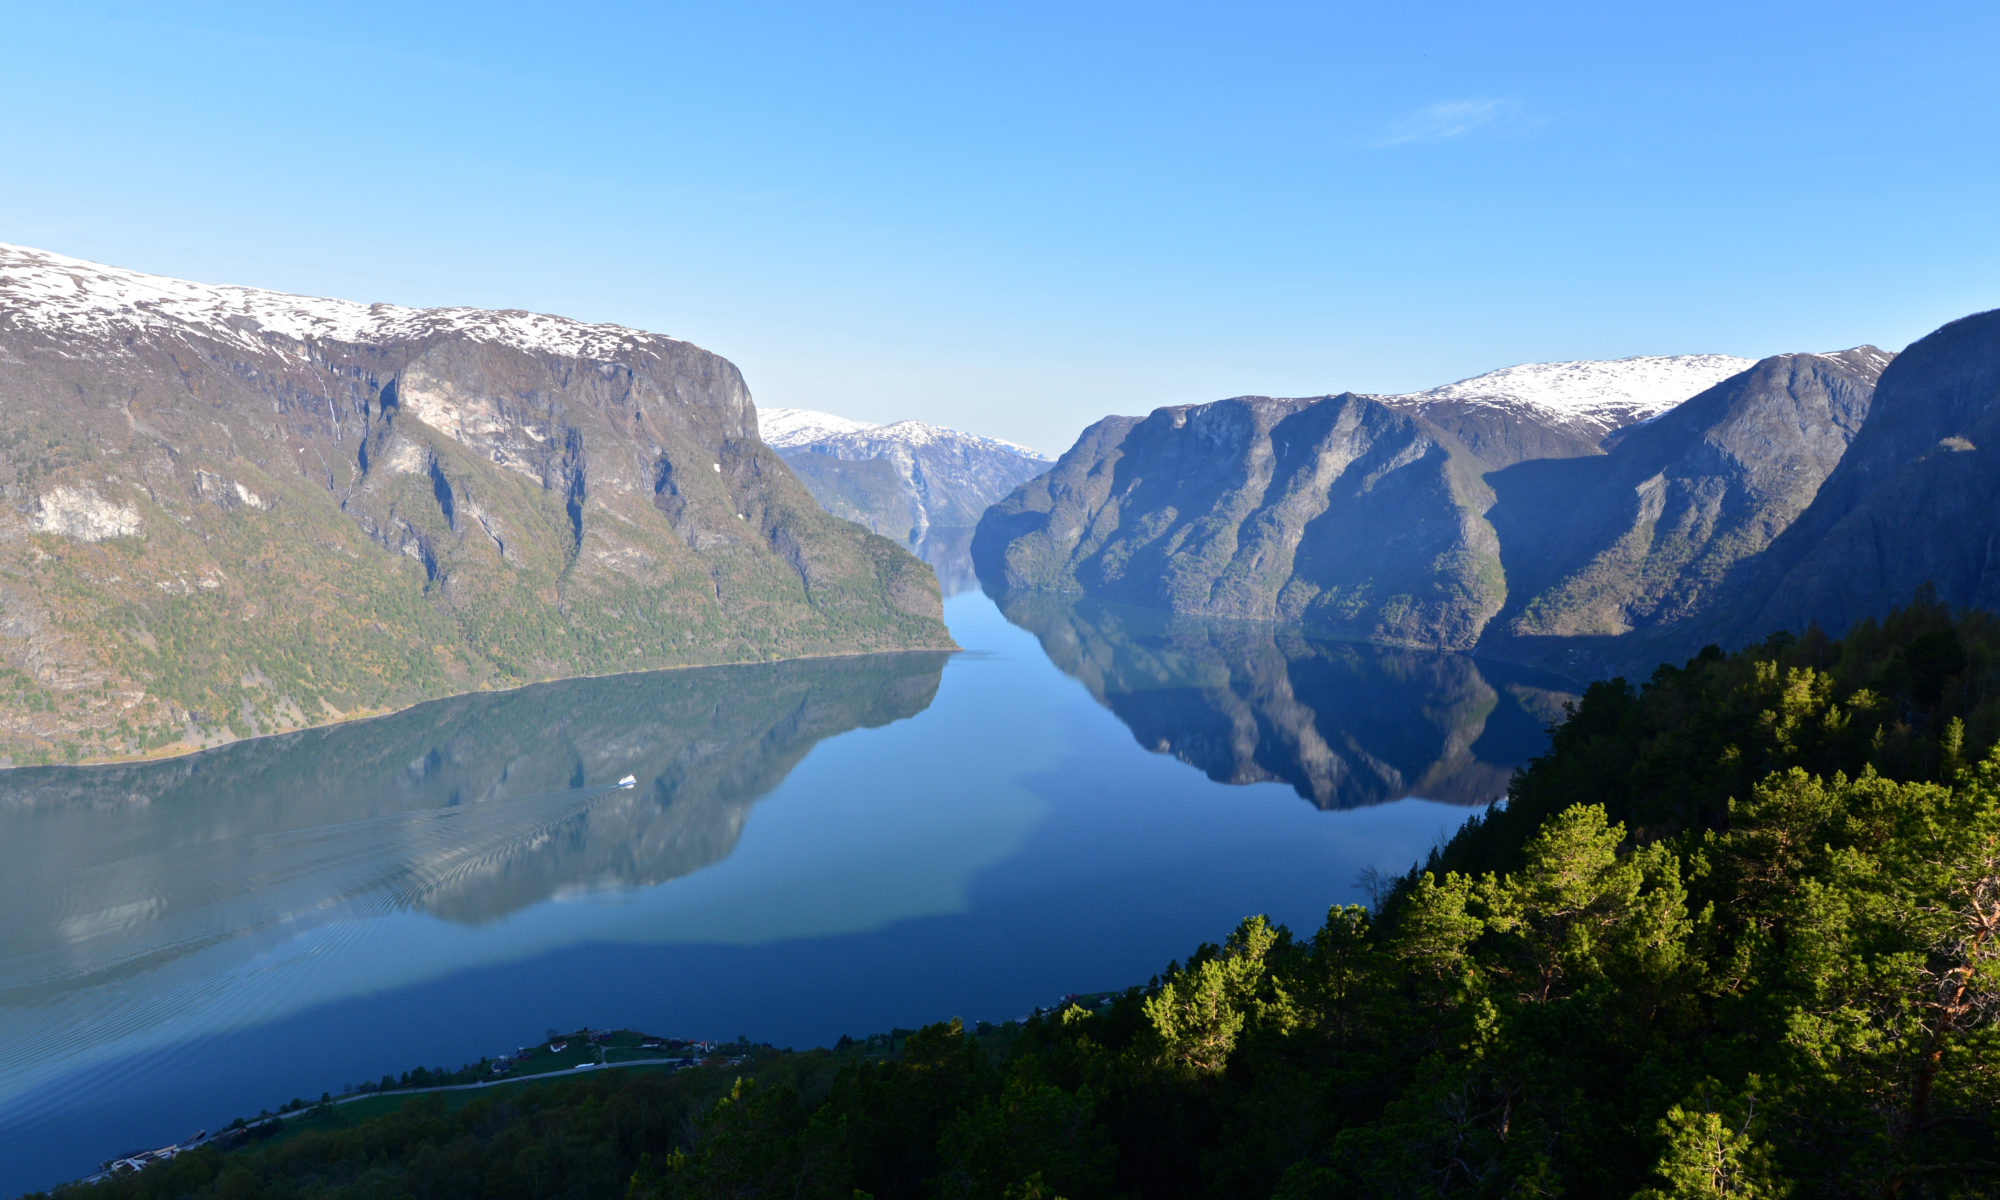 Fjords.com - Welcome to the Norwegian Fjords